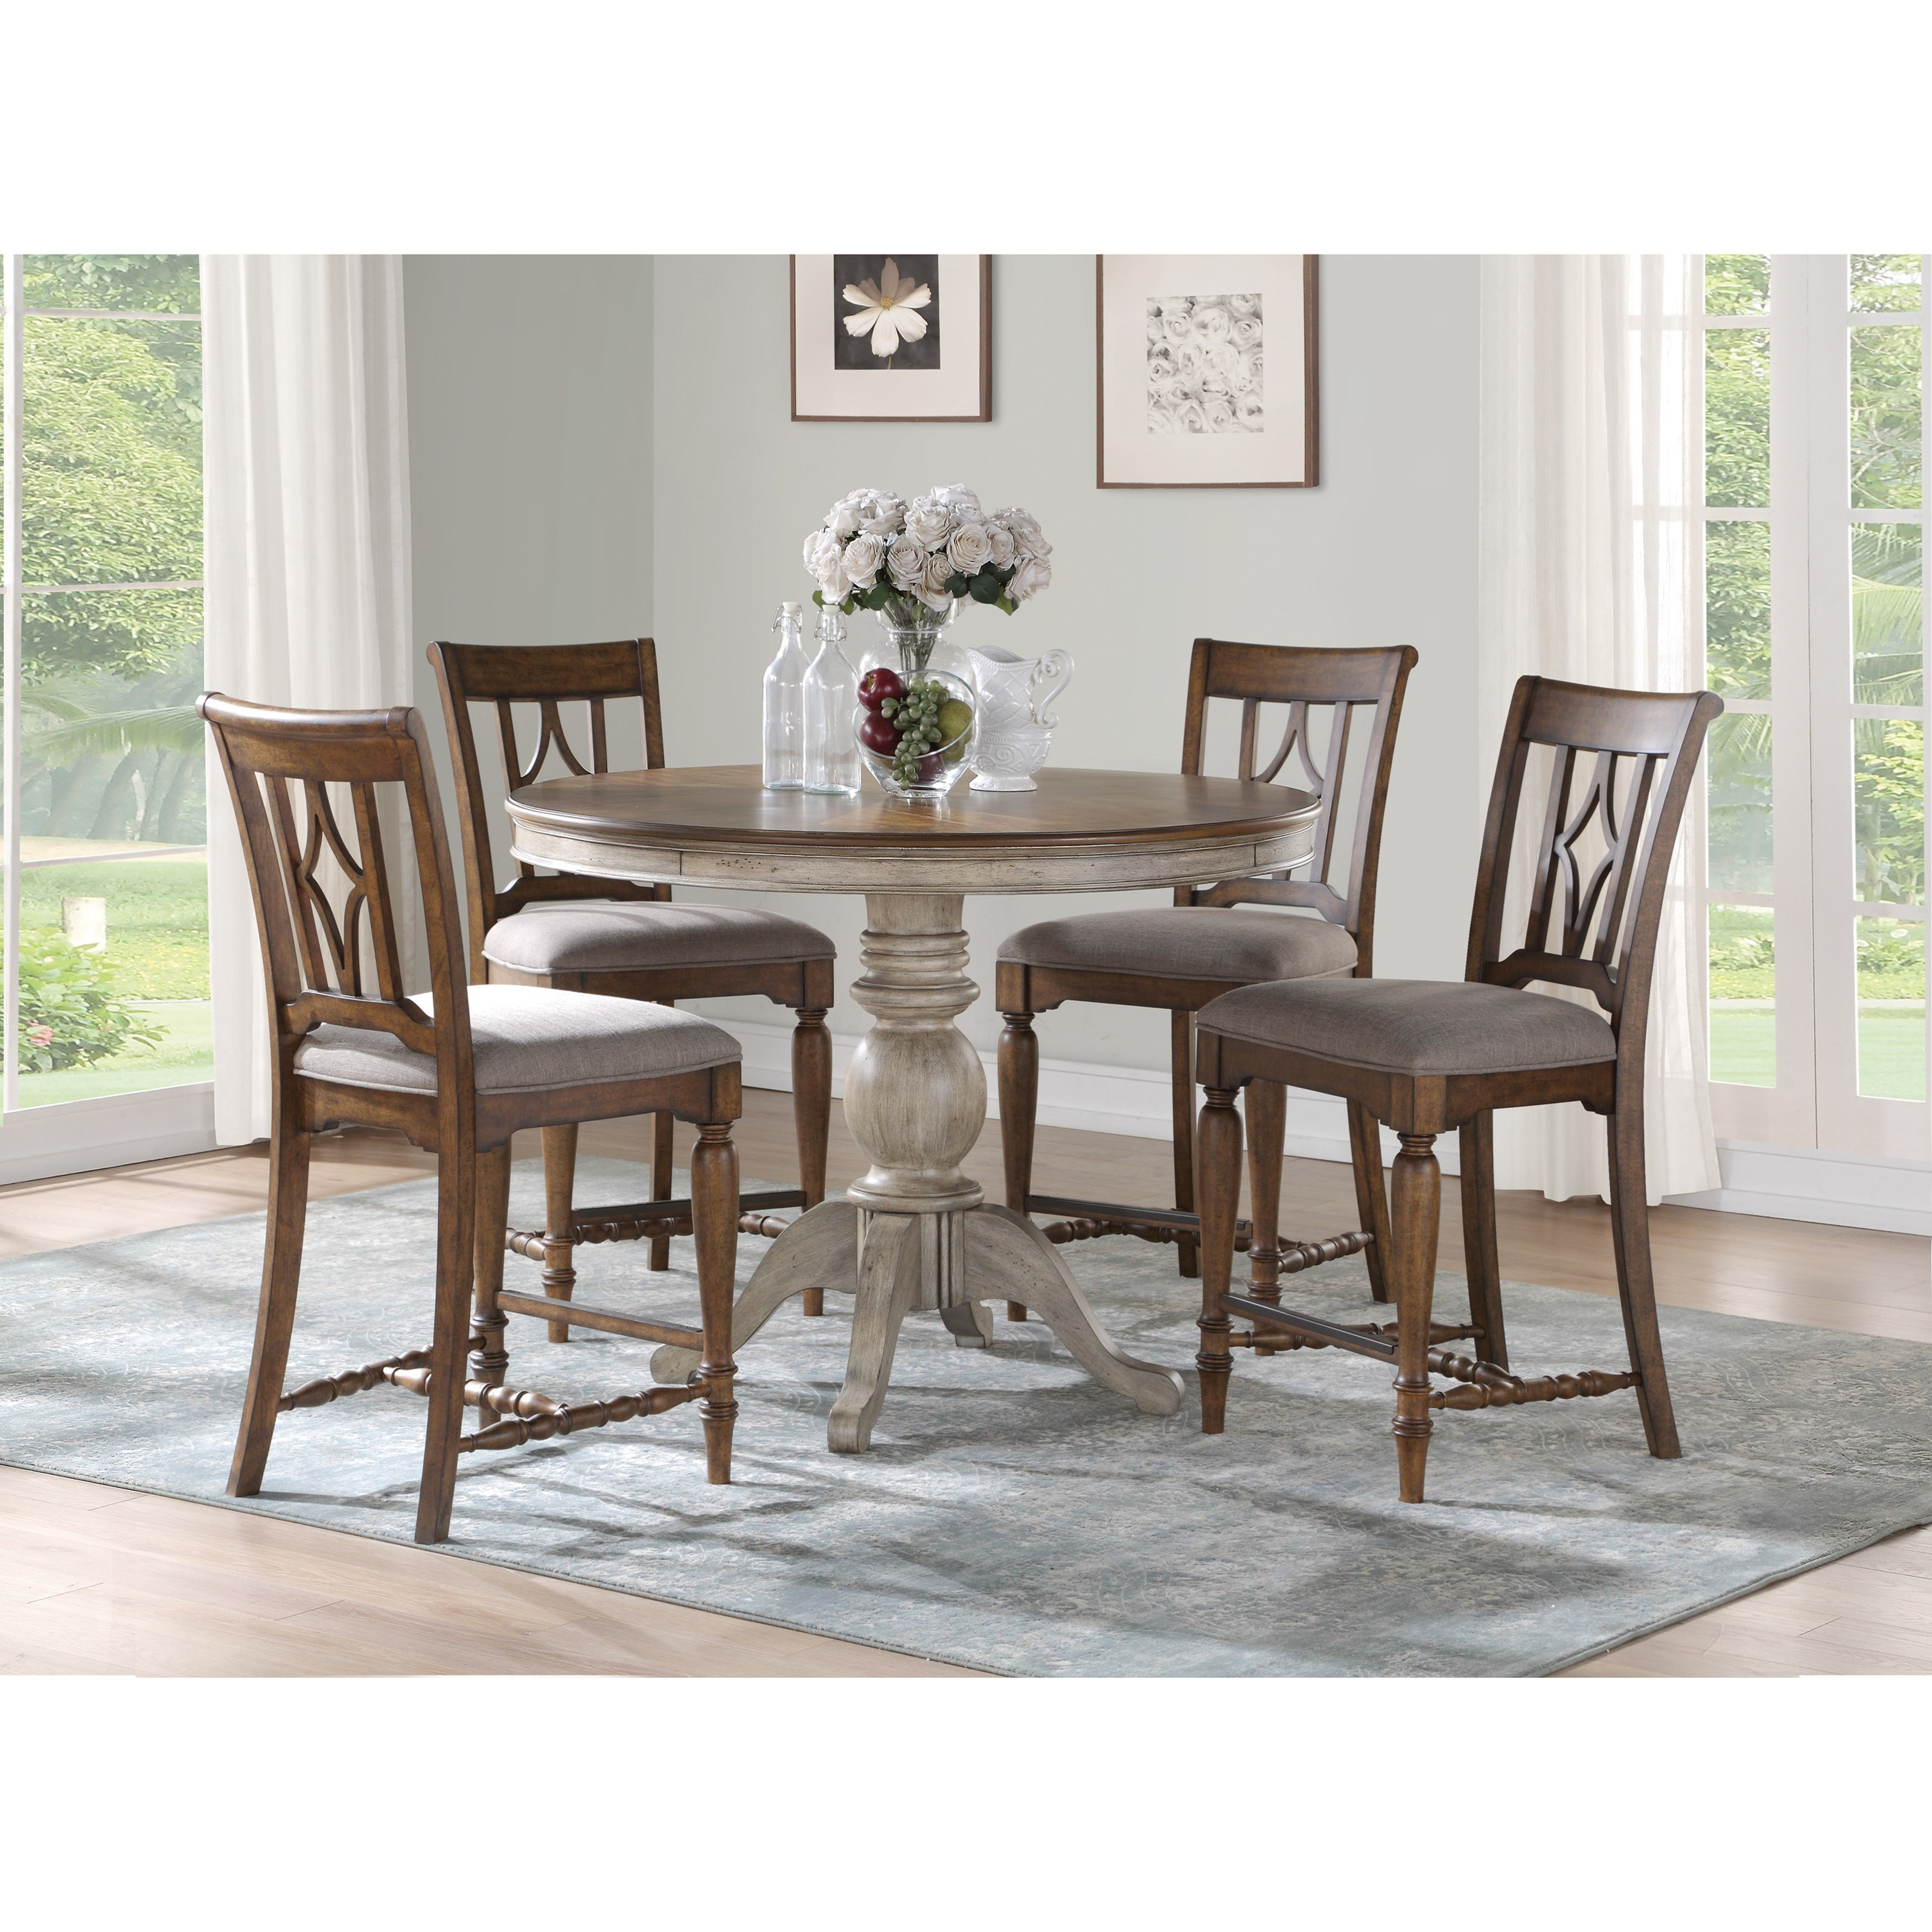 Plymouth 5-Piece Counter Height Table Set by Flexsteel Wynwood Collection at Fashion Furniture